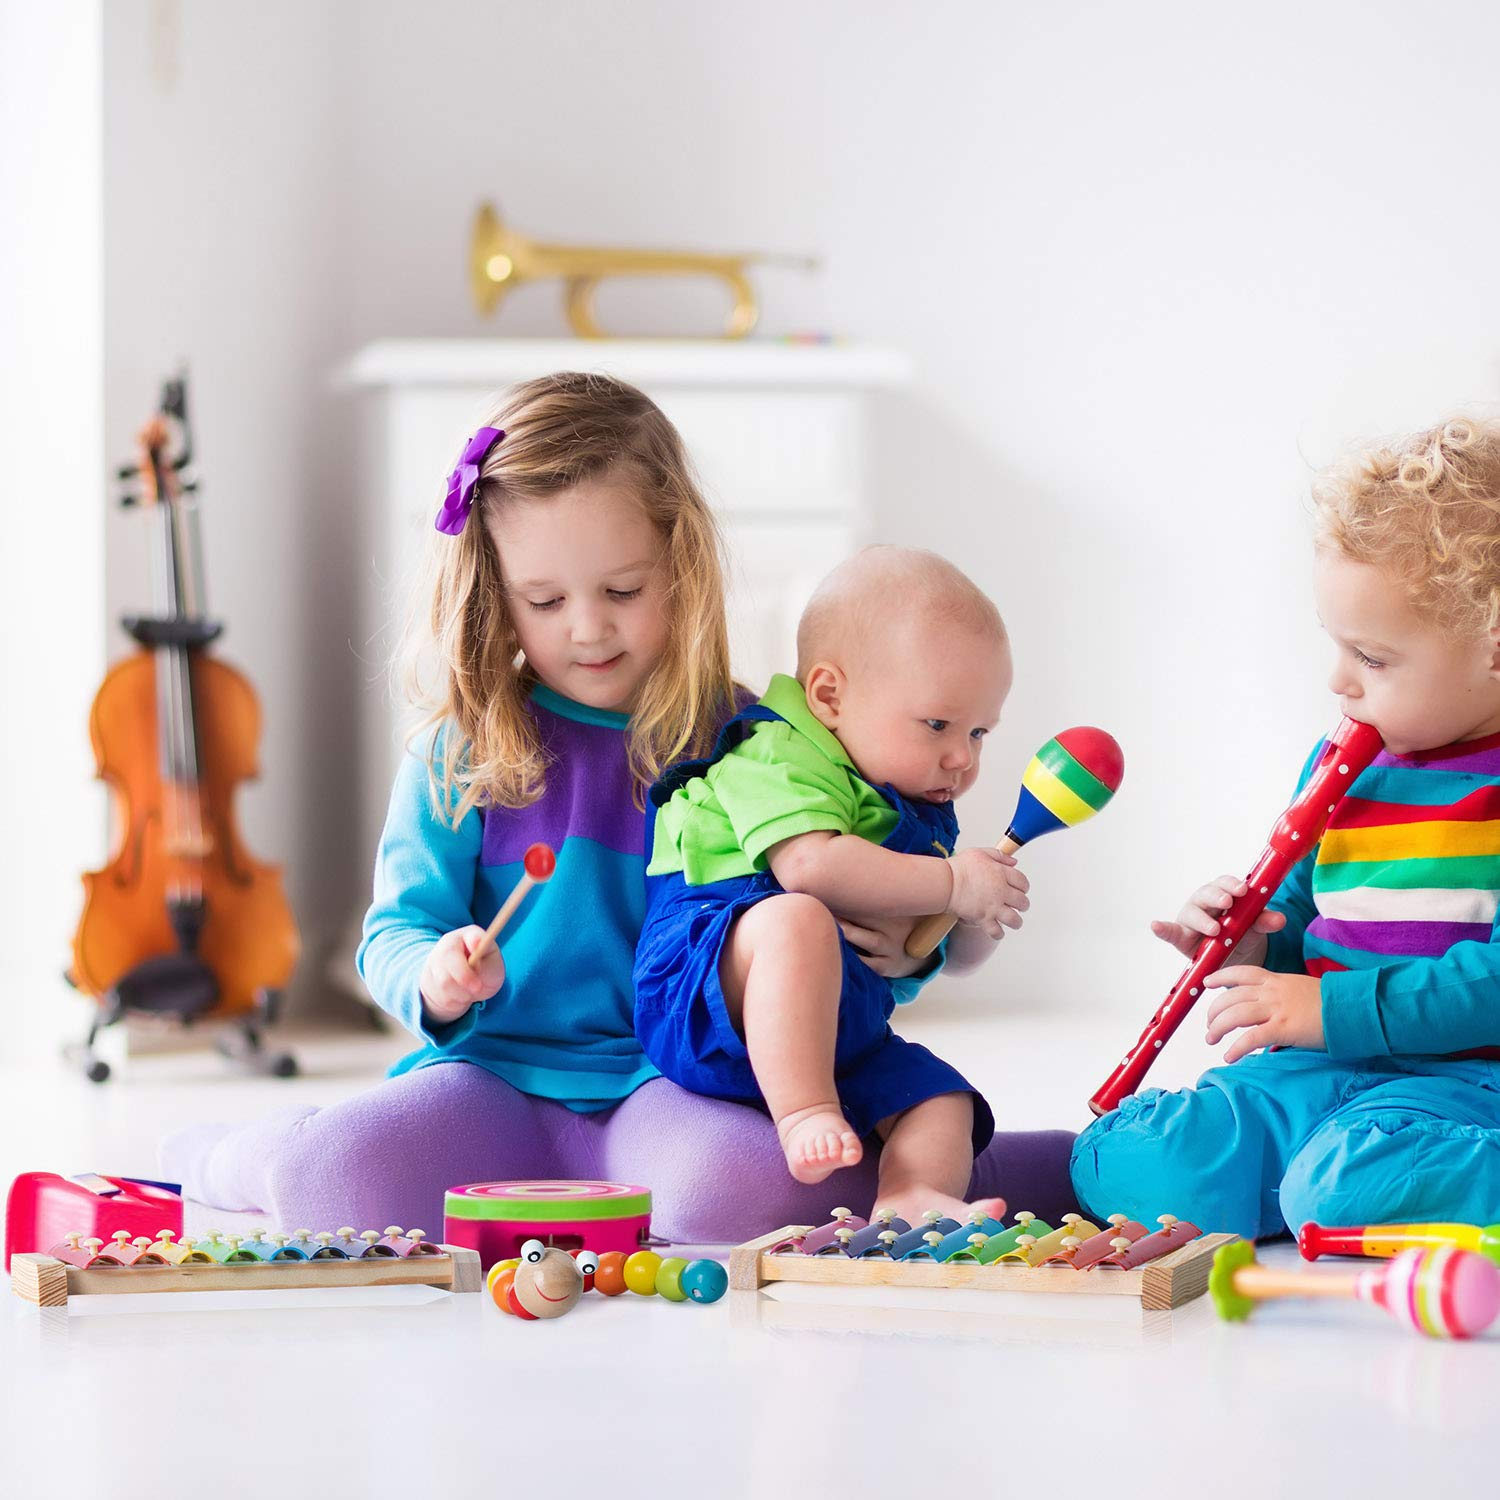 Xylophone for Kids Set Of Three Instrument Toys With Two Xylophone,One caterpillar toy-JiangChuan(2019 New Design),Best Birthday/Holiday Gift For Children's with Two Safe Mallets,Free Music socure by JiangChuan (Image #6)